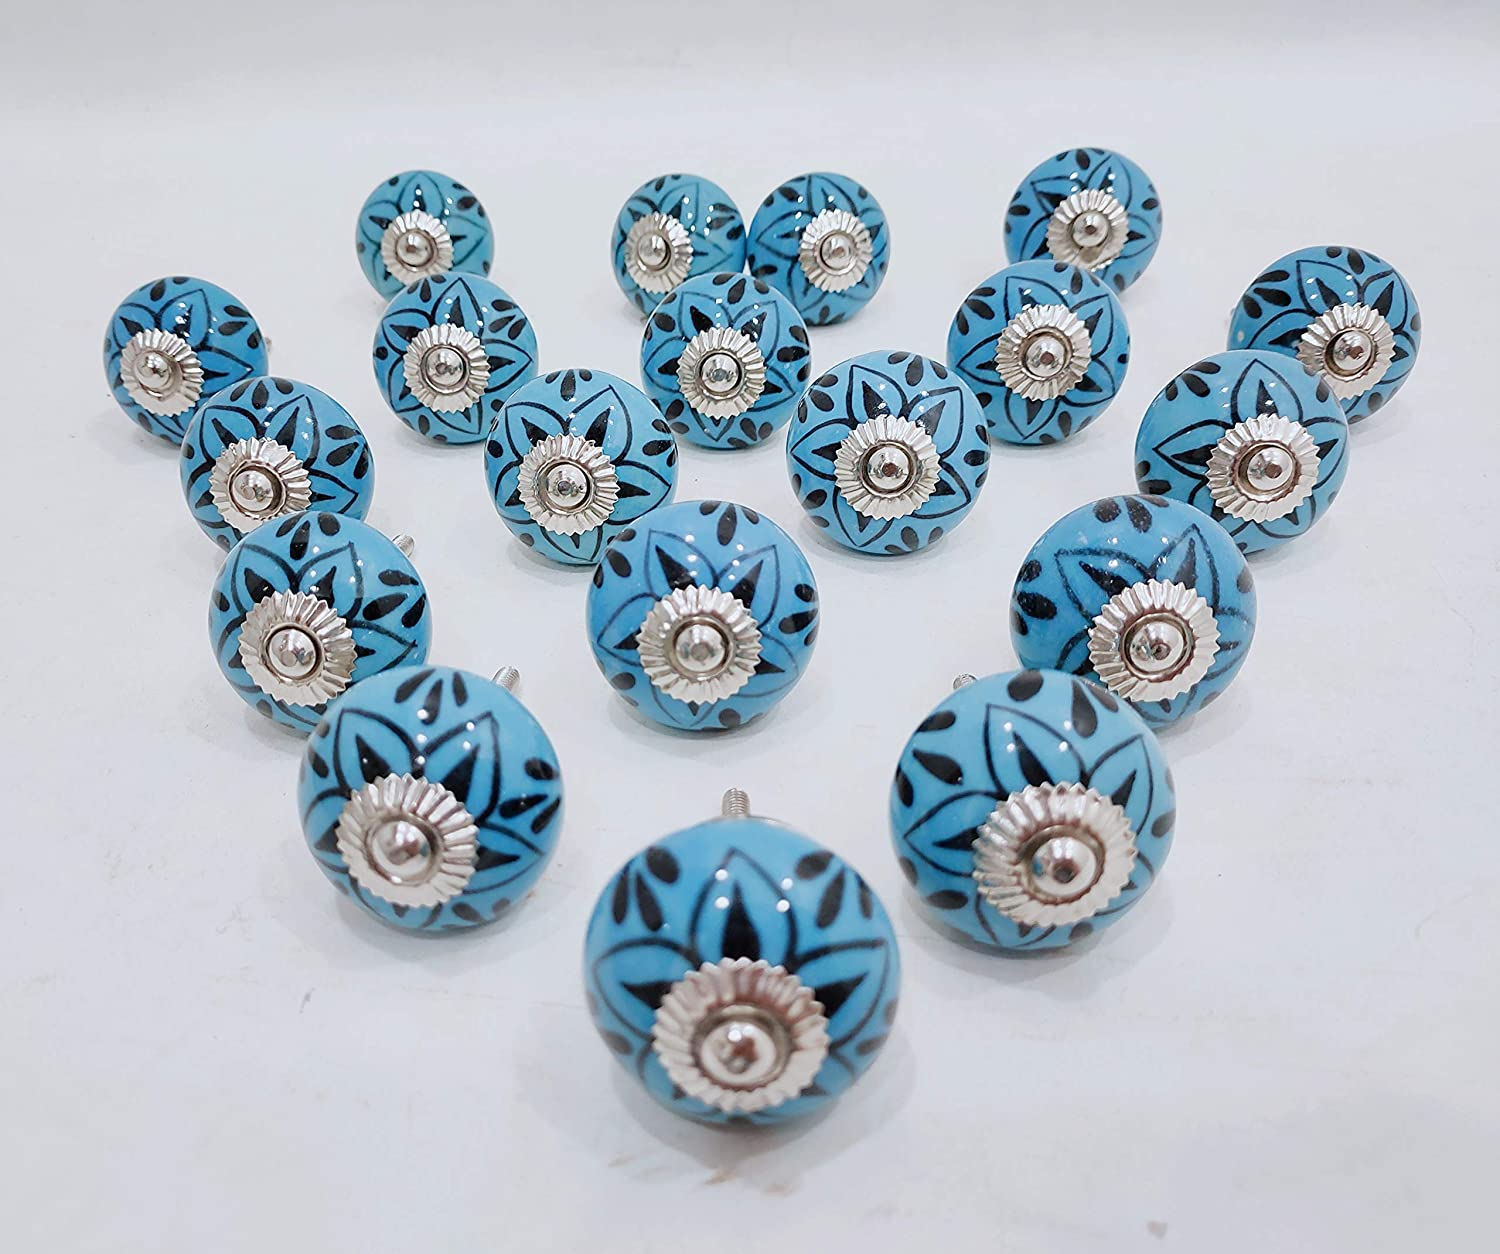 Drawer Knobs Set of 20 Ceramic Knobs Handpainted Turquoise Color Cabinet and Furniture Knobs Door Knobs with Proper Hardware Fitting